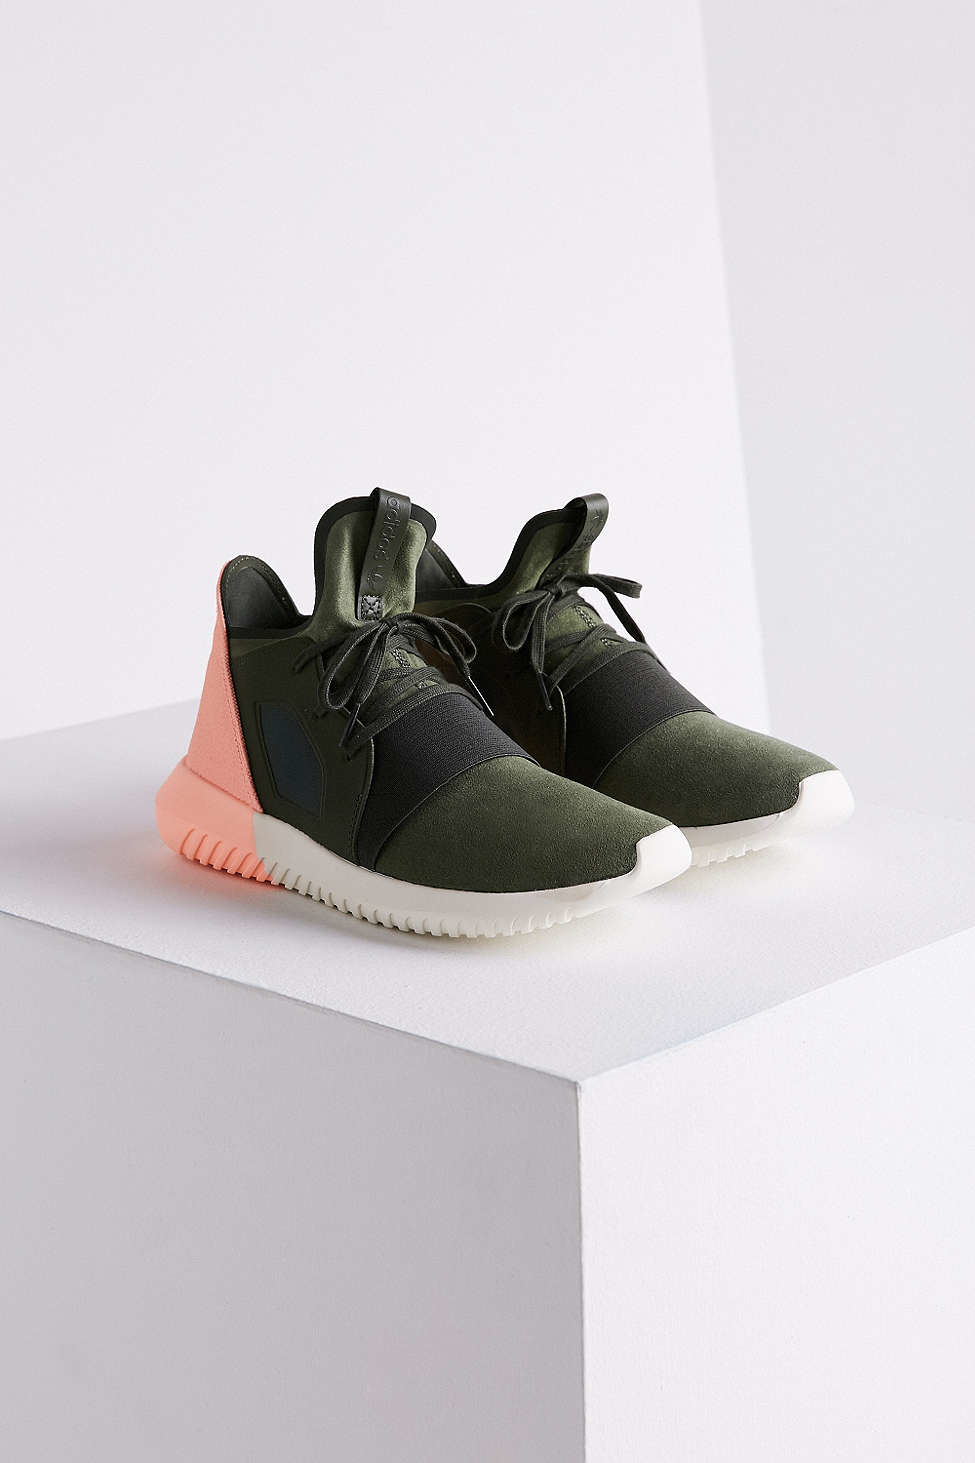 Lyst - adidas Originals Color-Blocked Neoprene and Canvas Sneakers ... 00d60a793086